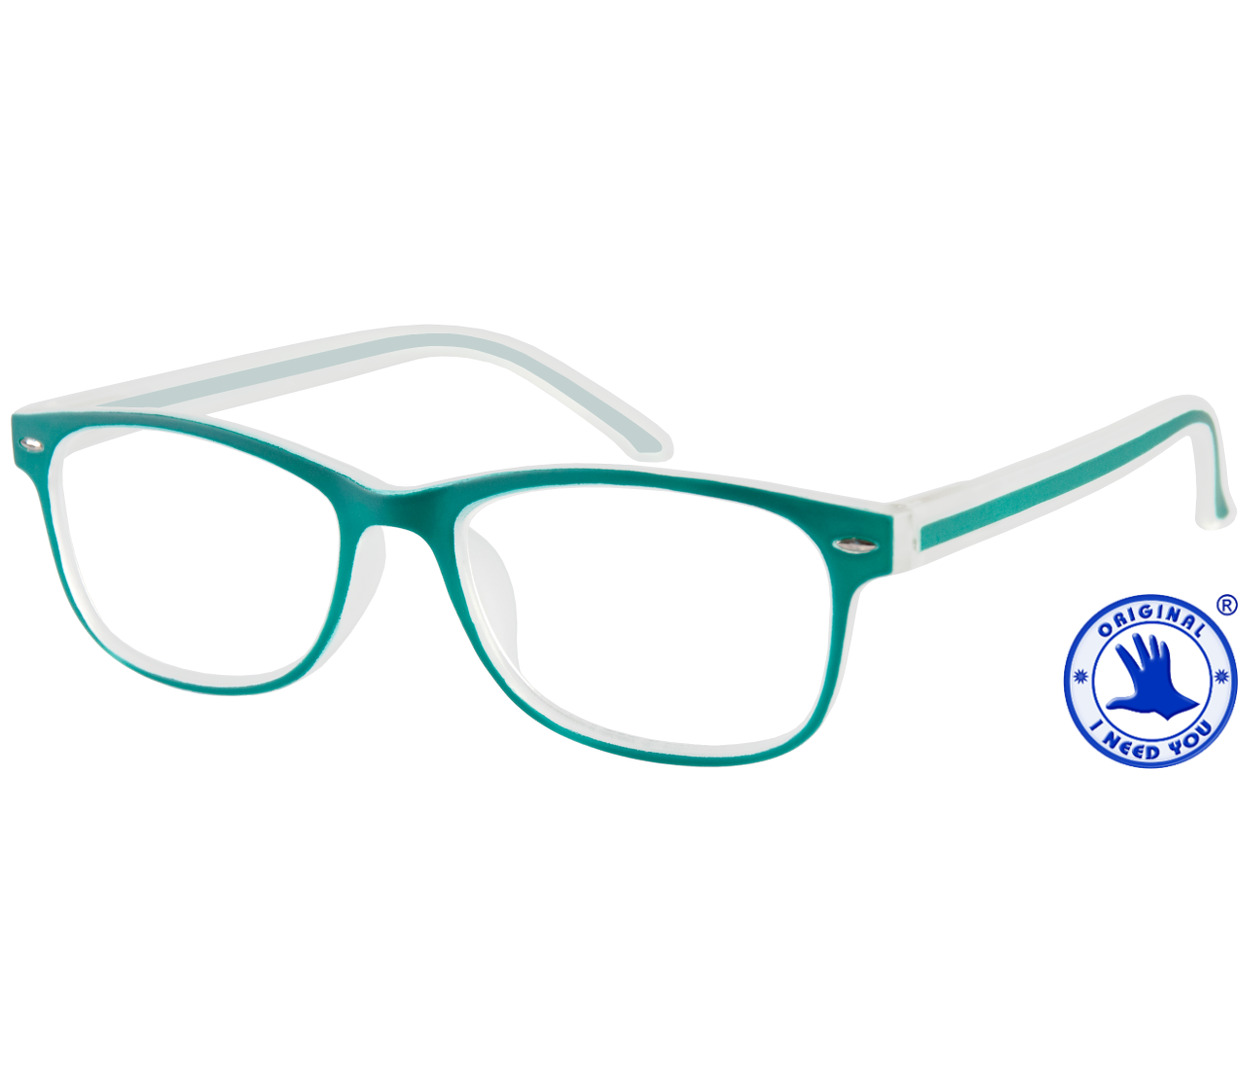 Main Image (Angle) - Minty (Green) Classic Reading Glasses